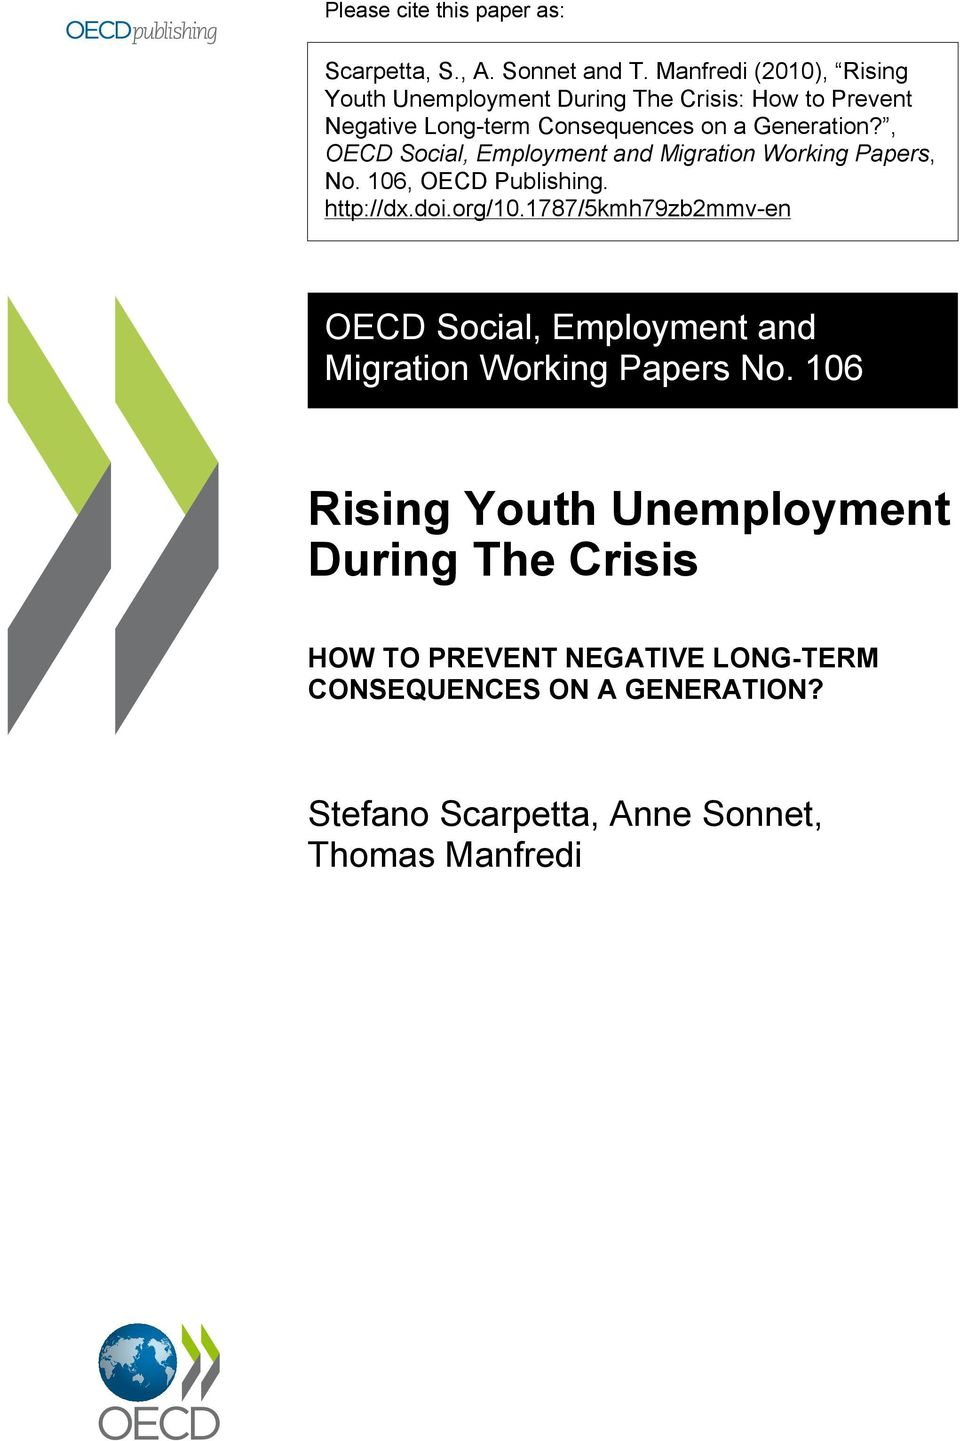 , OECD Social, Employment and Migration Working Papers, No. 106, OECD Publishing. http://dx.doi.org/10.